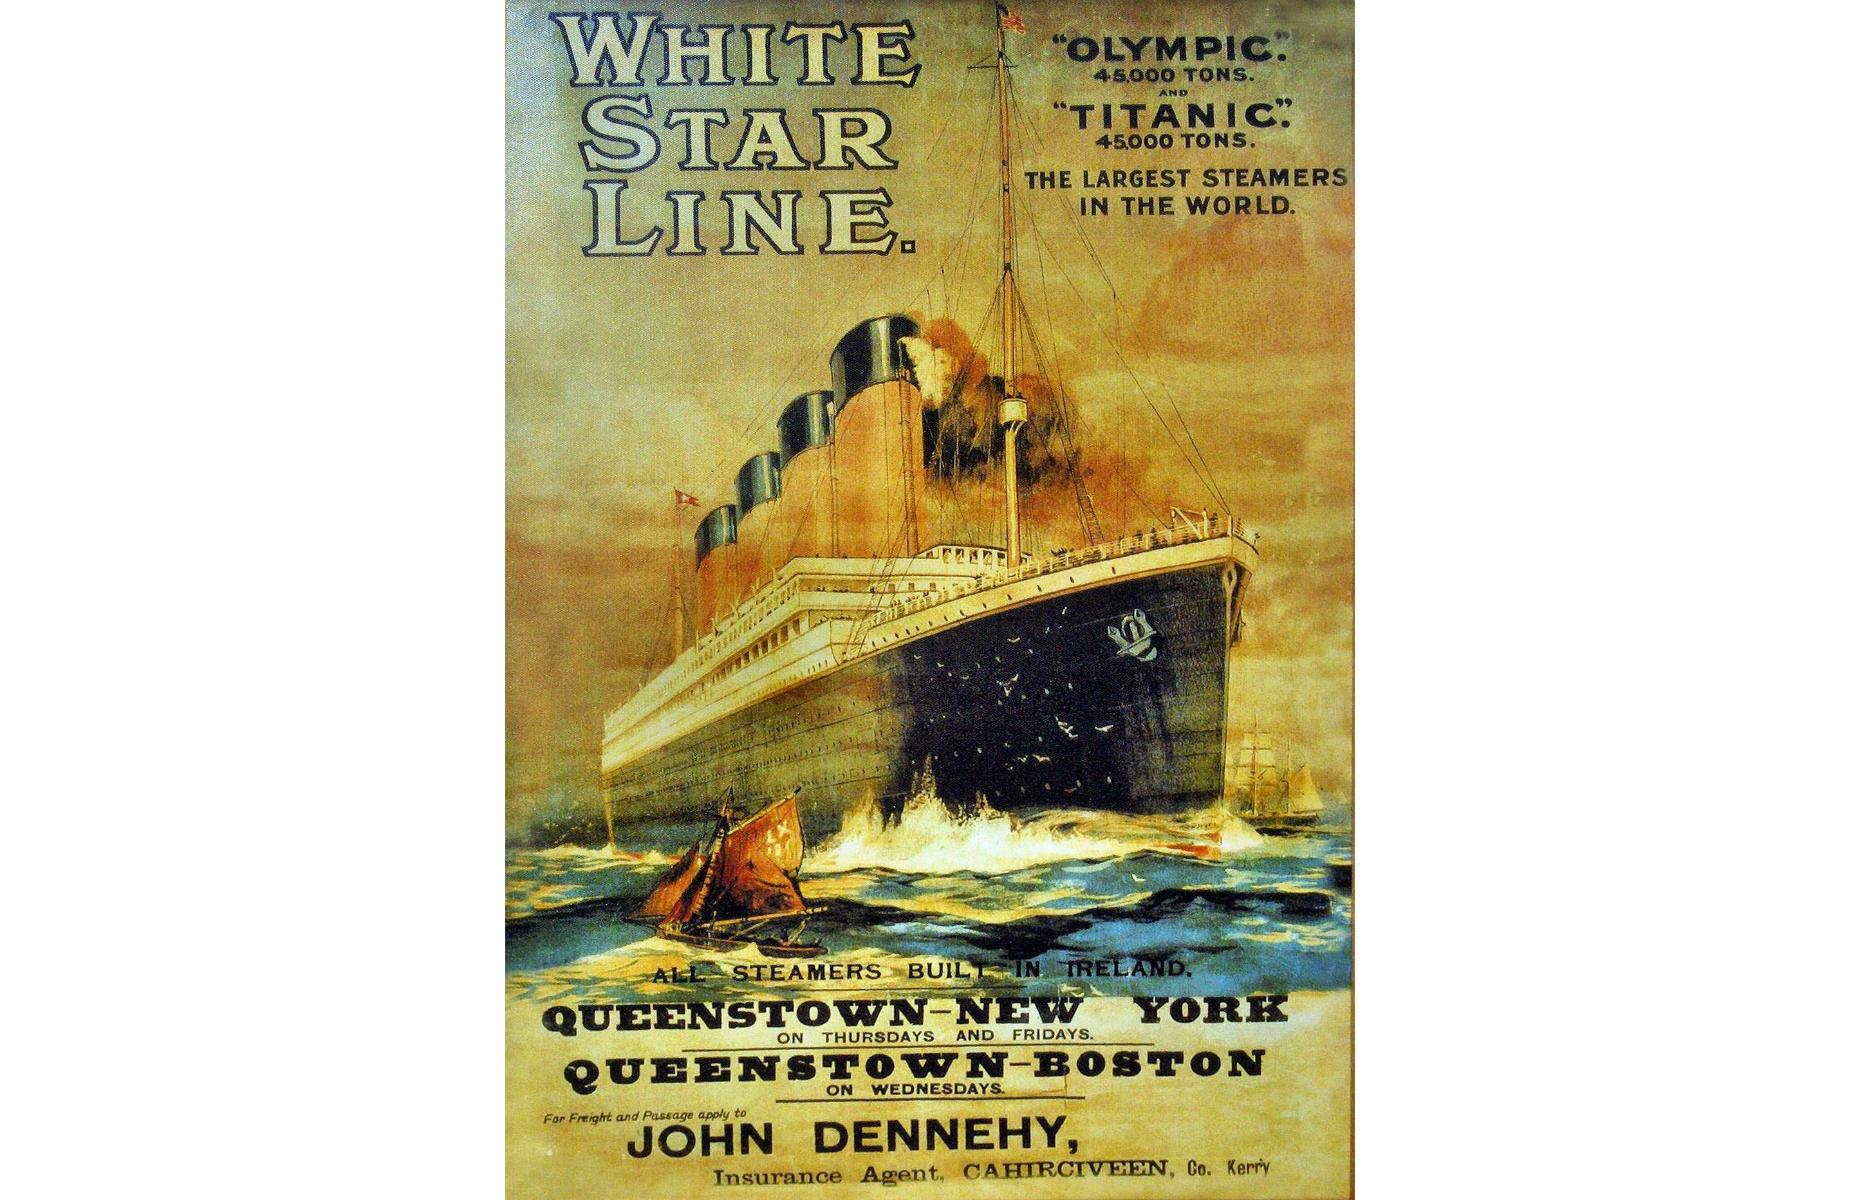 Slide 2 of 46: The Titanic was built during a golden age of sea travel. Growing numbers of immigrants to the New World and wealthier passengers during the early 20th century meant competition for business on Europe to New York sailingswas fierce. Plans were first laid for the Titanic (and her near-identical sister ships the Olympic and Britannic) in 1907 by the White Star Line. Other companies, including Cunard, already had popular passenger ships such as the RMS Lusitania and the RMS Mauretania, and the Titanic was designed to compete with these stars of the sea.